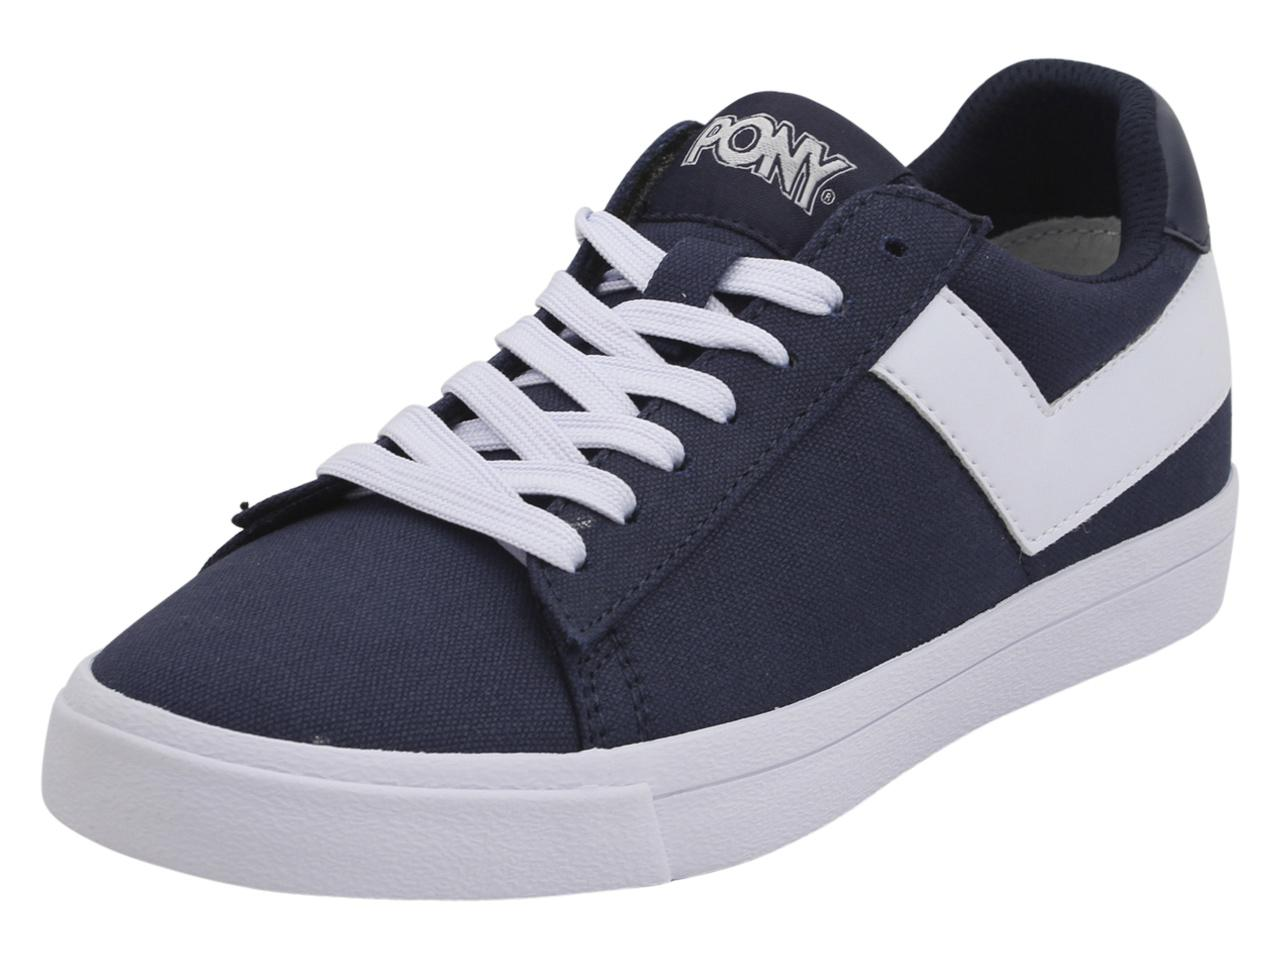 Image of Pony Women's Top Star Lo Core Canvas Sneakers Shoes - Blue - 7.5 B(M) US